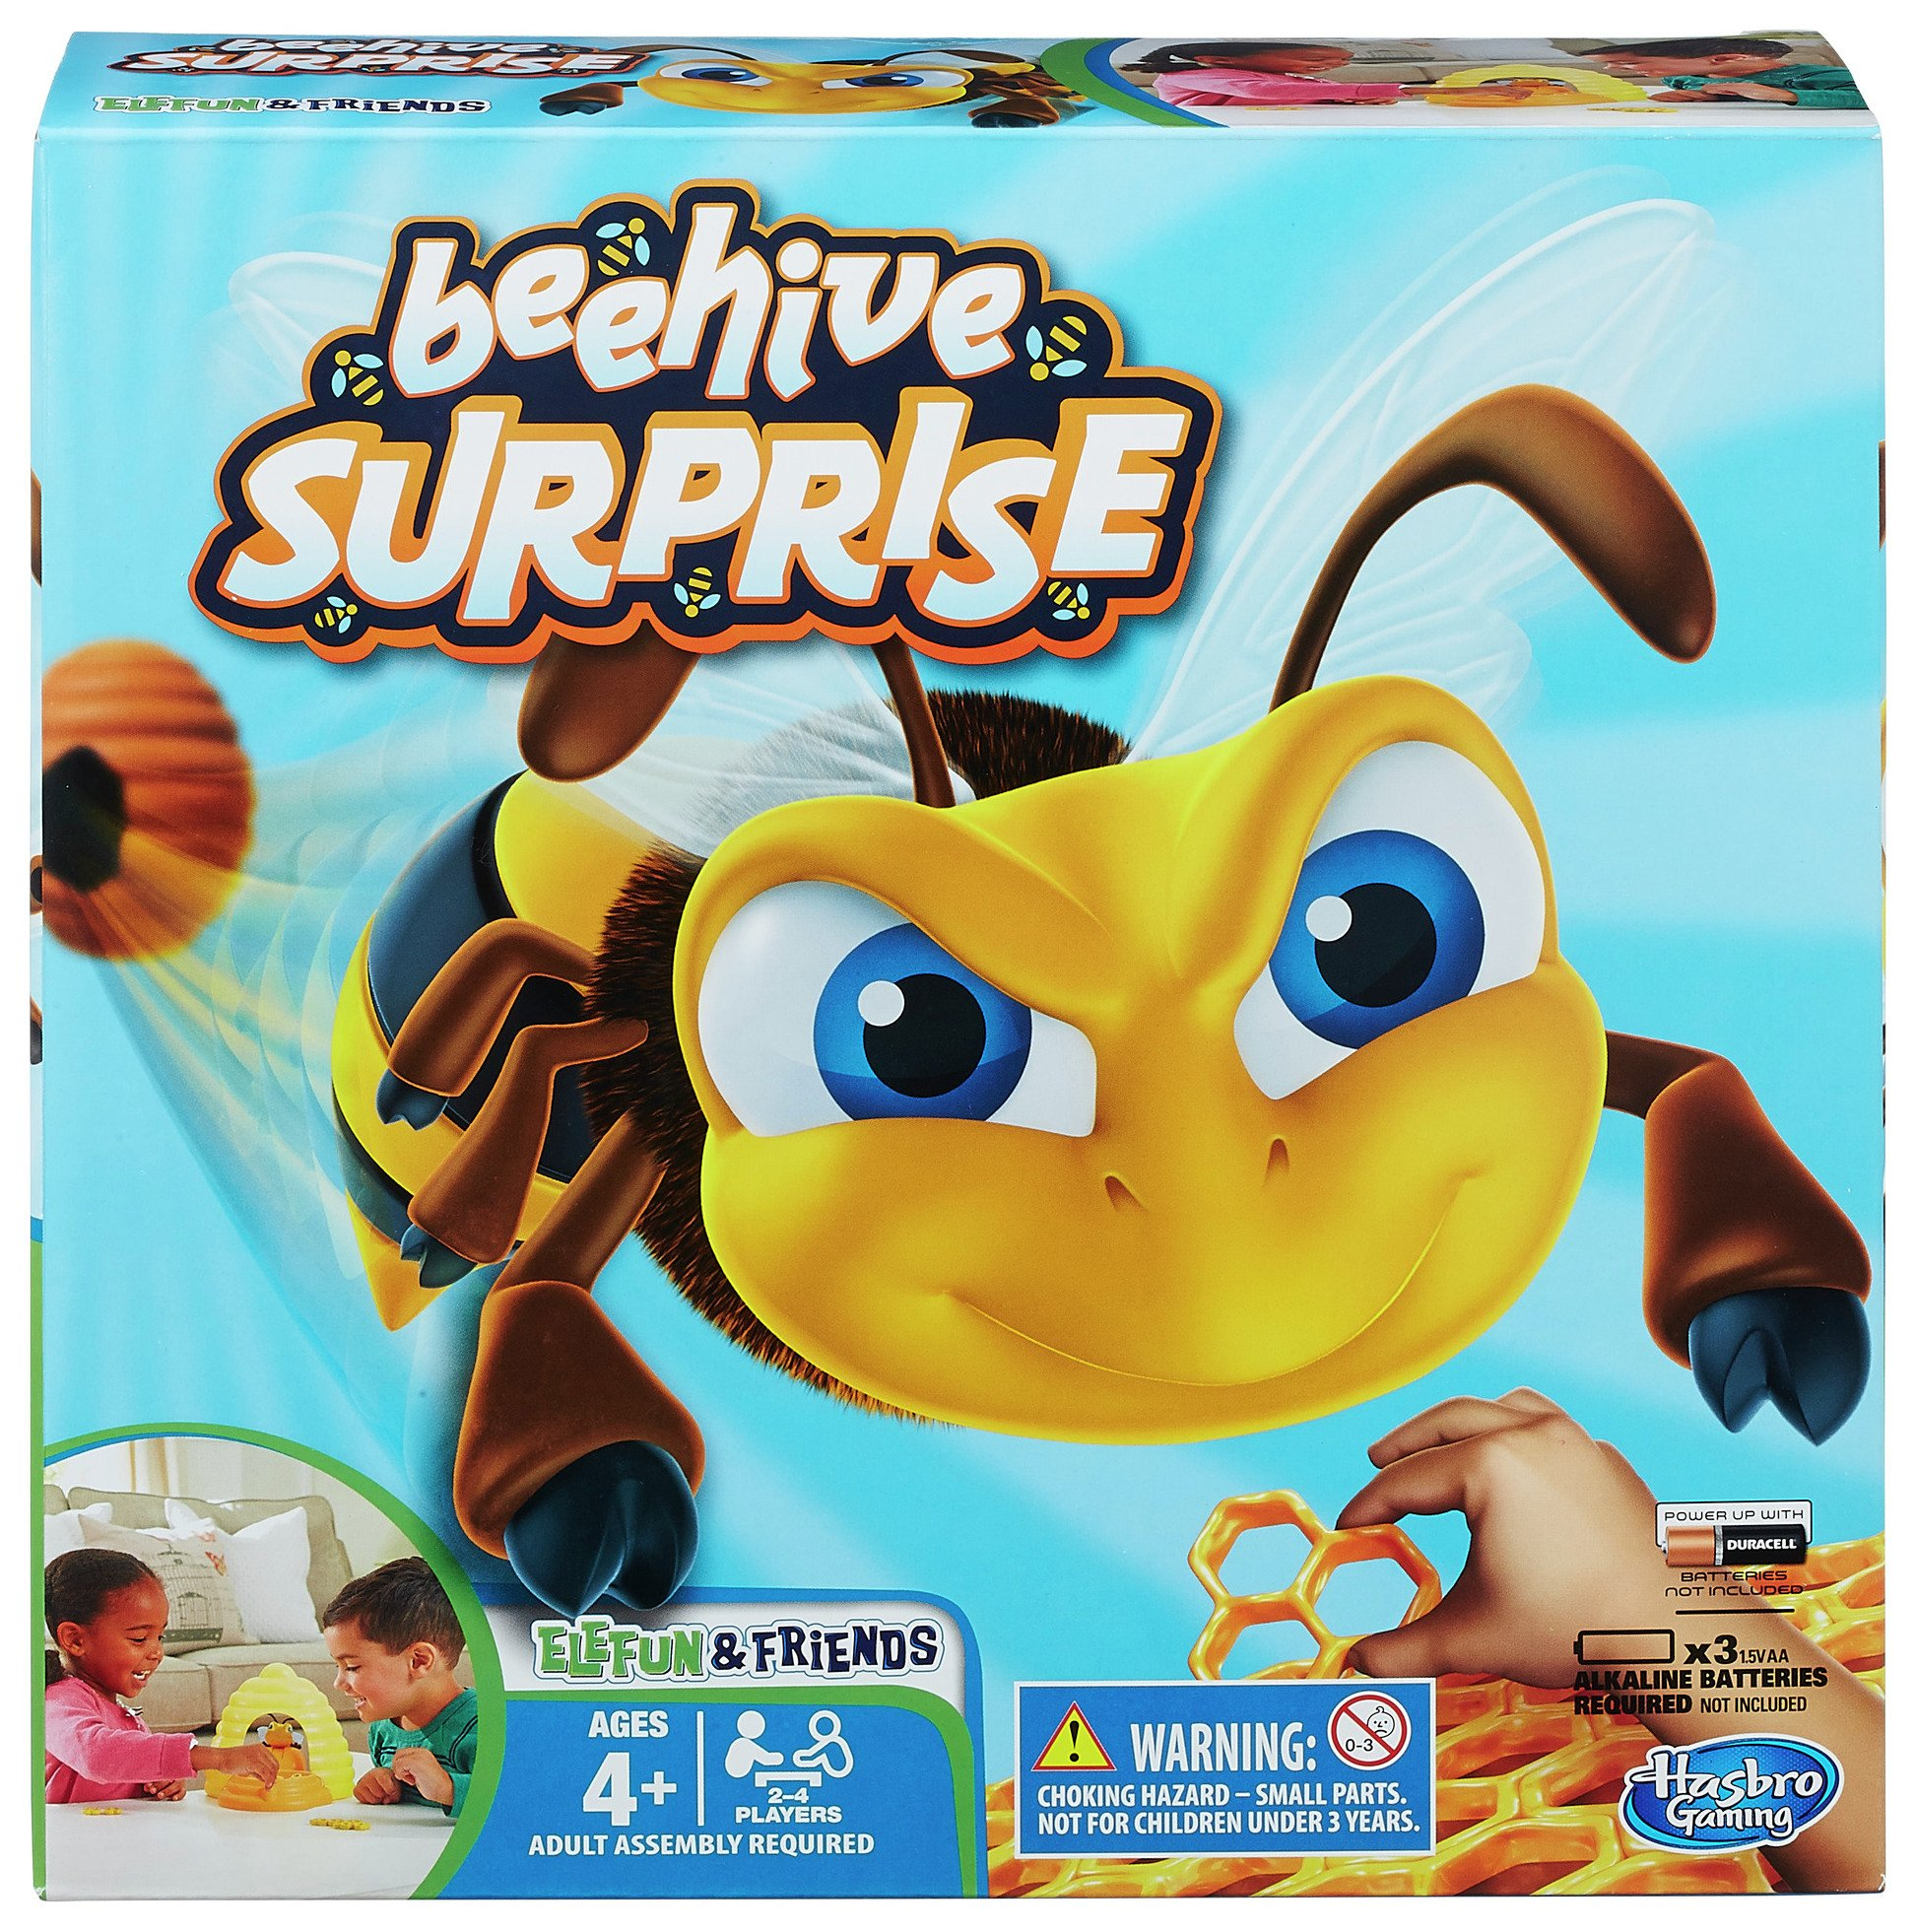 Image of Beehive Surprise from Hasbro - Game.